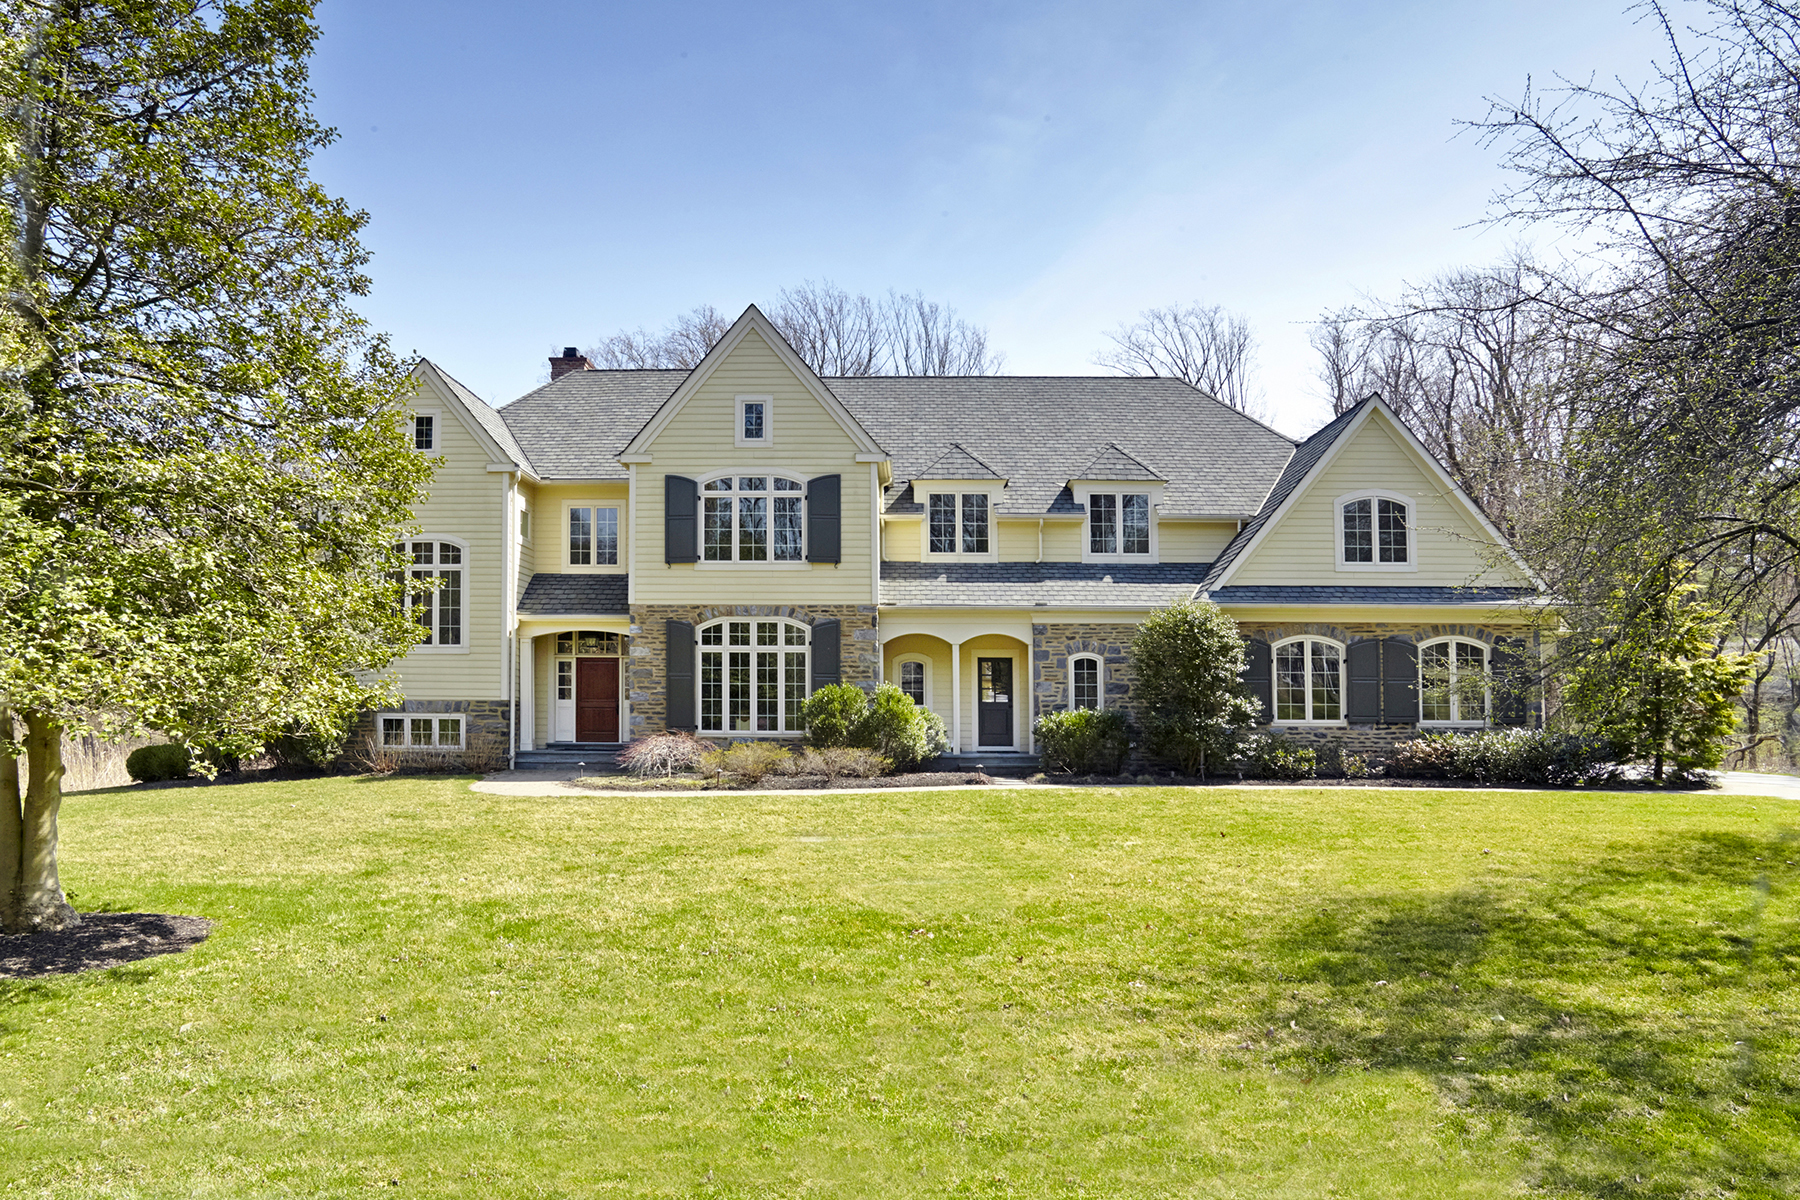 Single Family Home for Sale at Springhouse Estate Manor 515 Great Springs Road Bryn Mawr, Pennsylvania 19010 United States